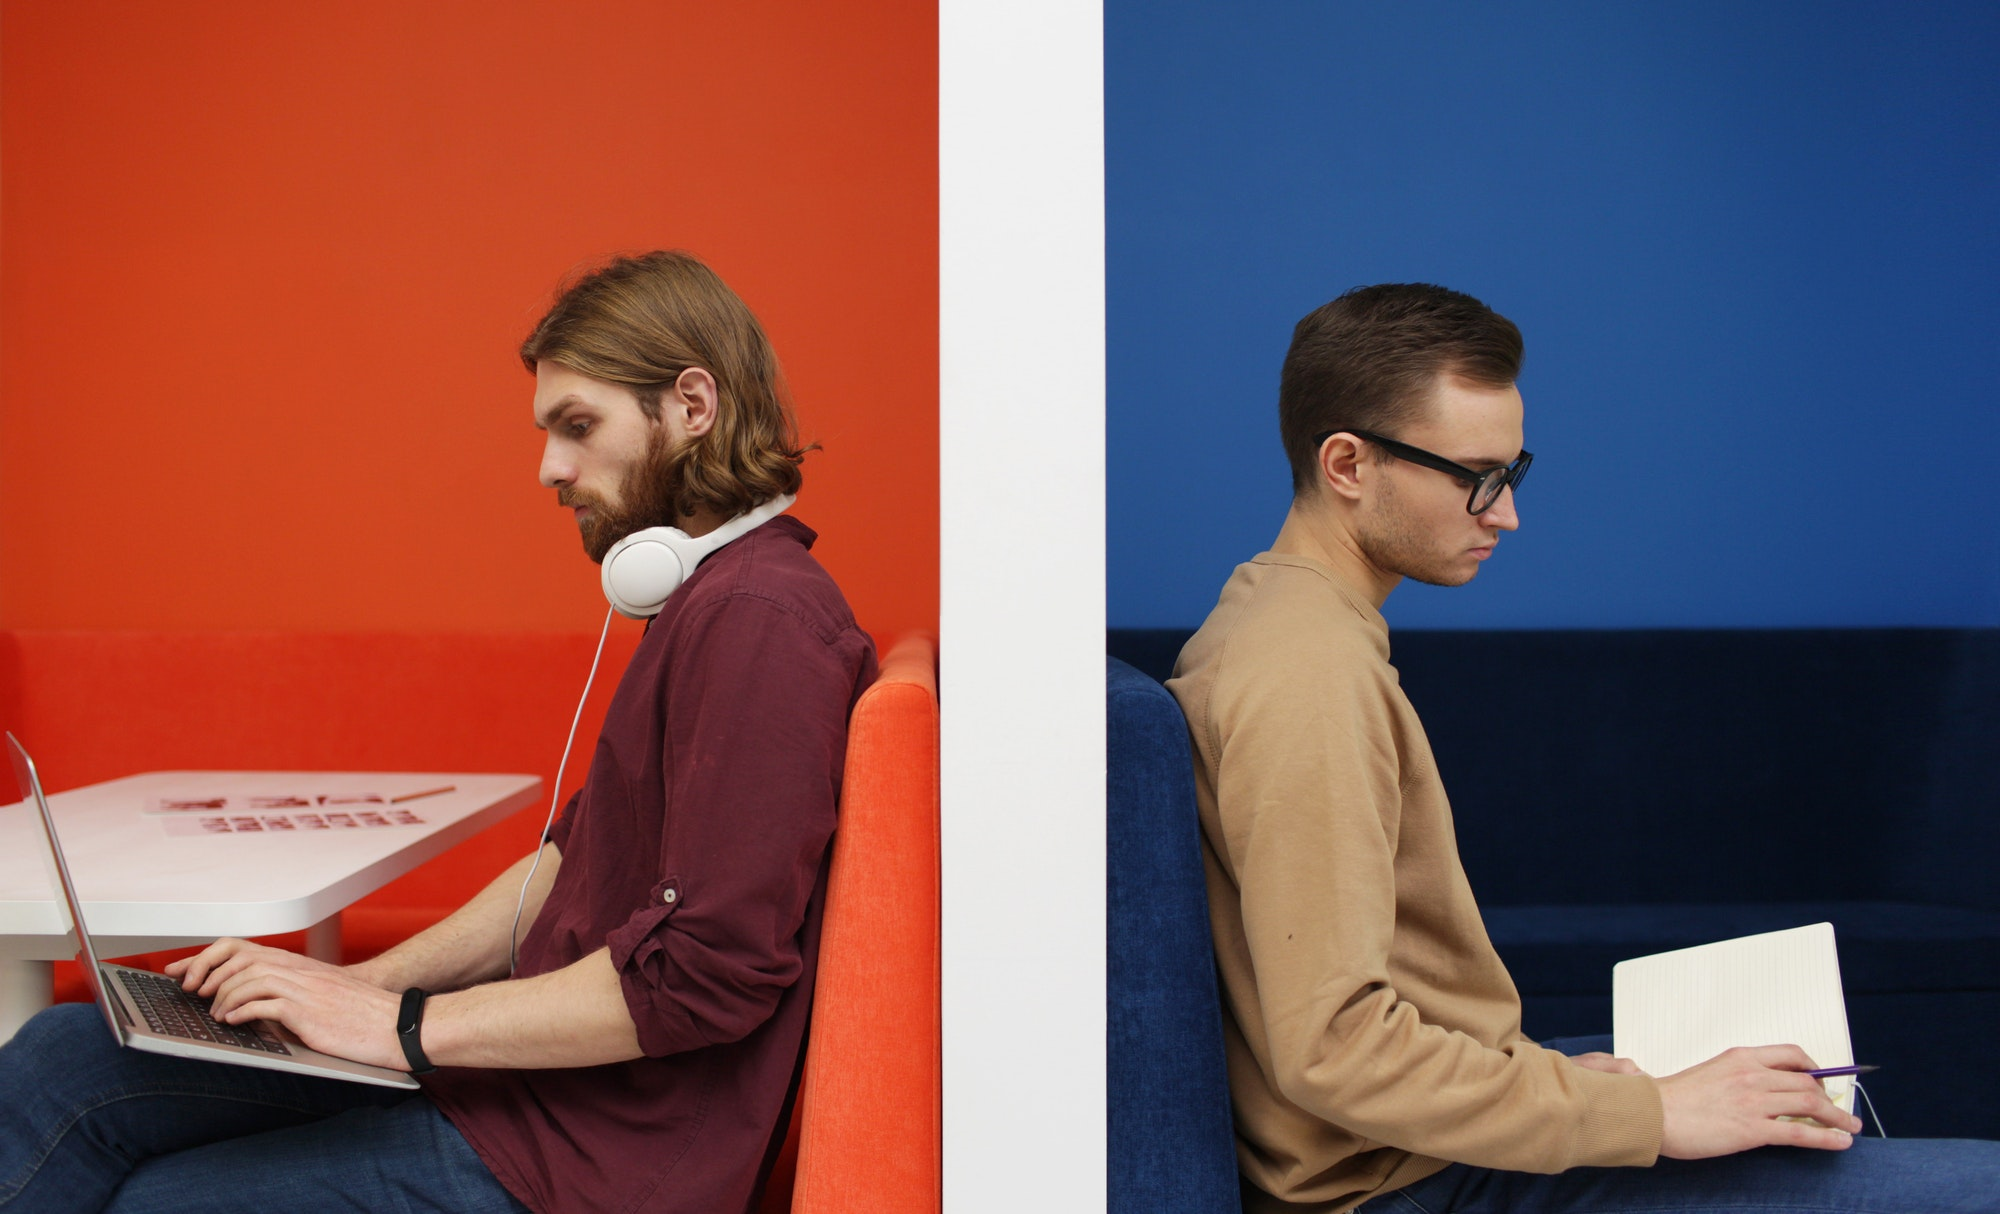 Man with laptop and man with book